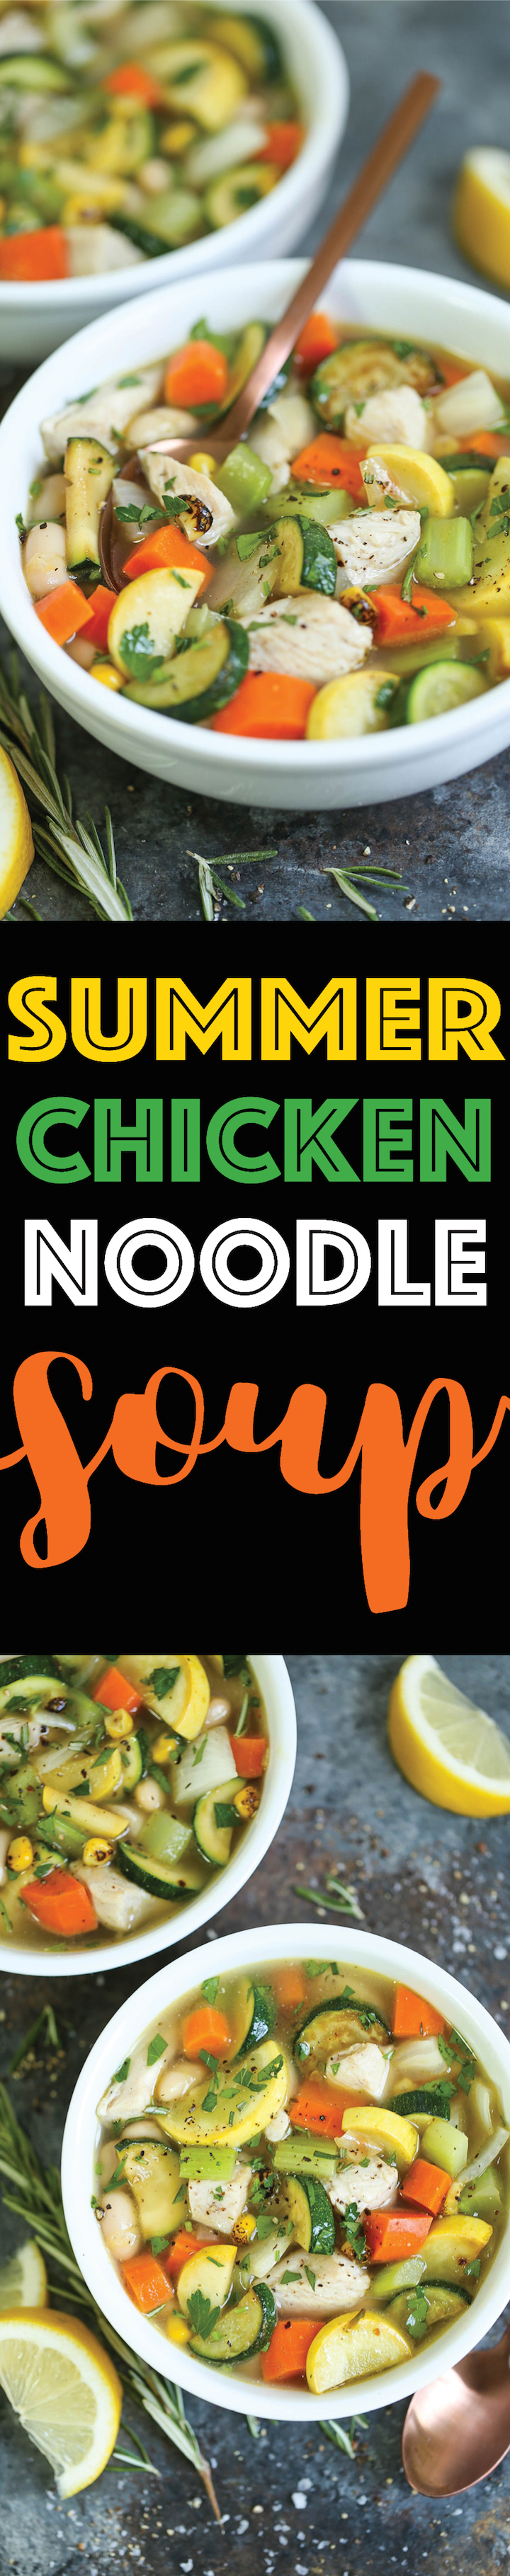 Summer Chicken Noodle Soup - Everyone's favorite classic chicken noodle soup using summer vegetables! So hearty, comforting and cozy, even in the heat!